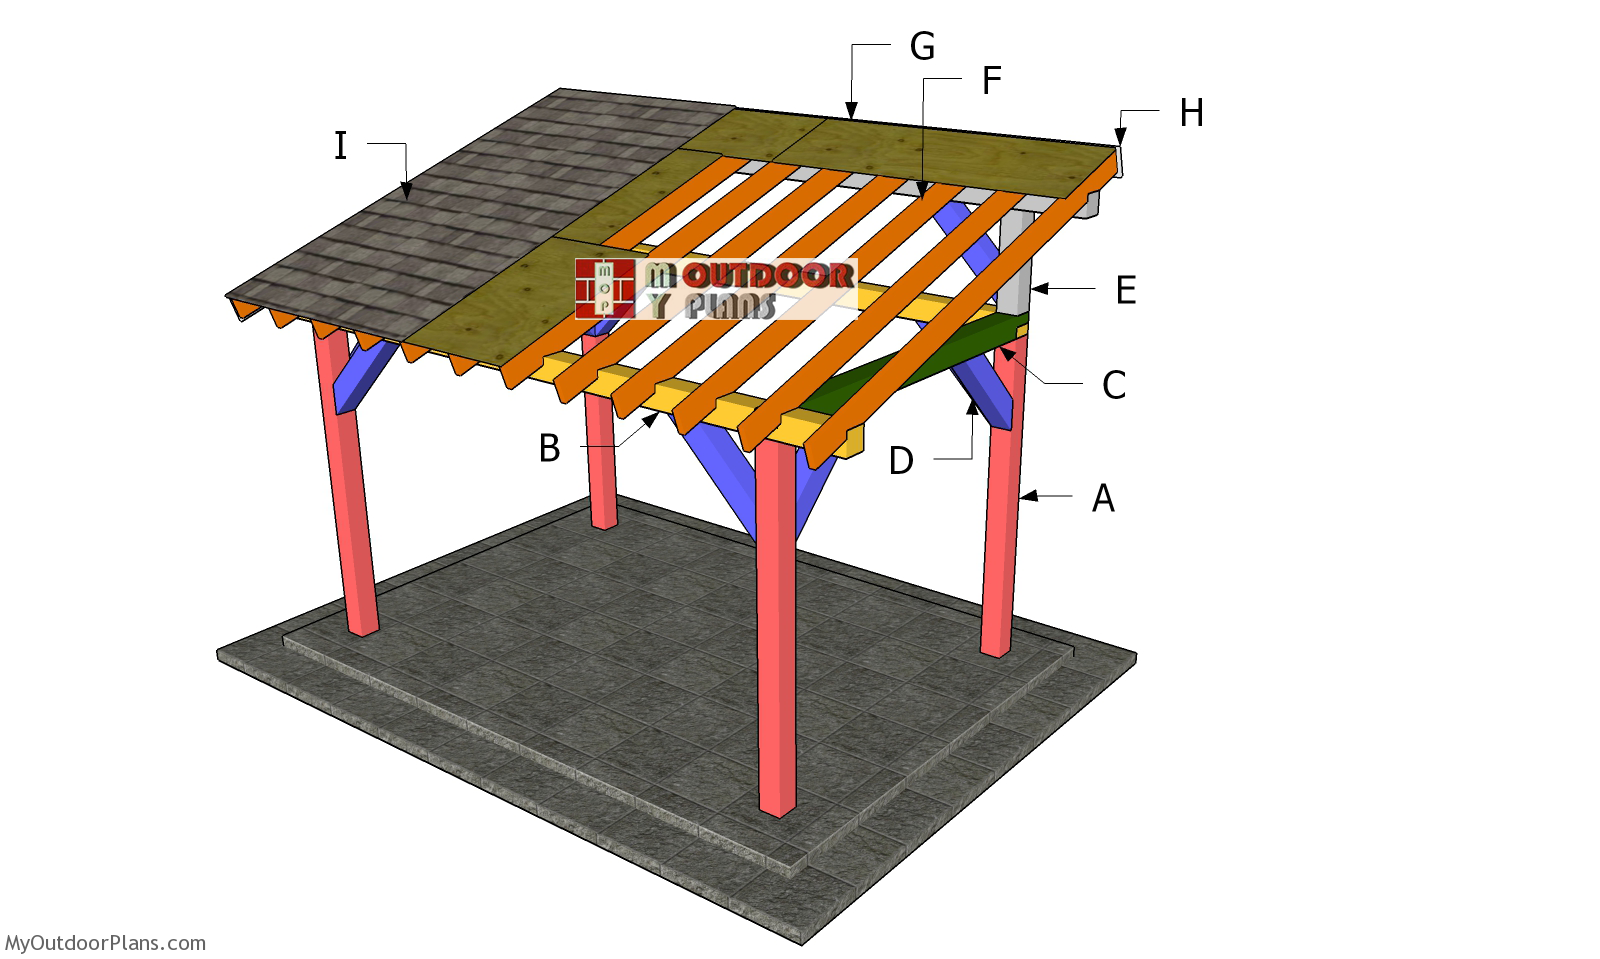 8x12 Lean to Pavilion Roof Plans